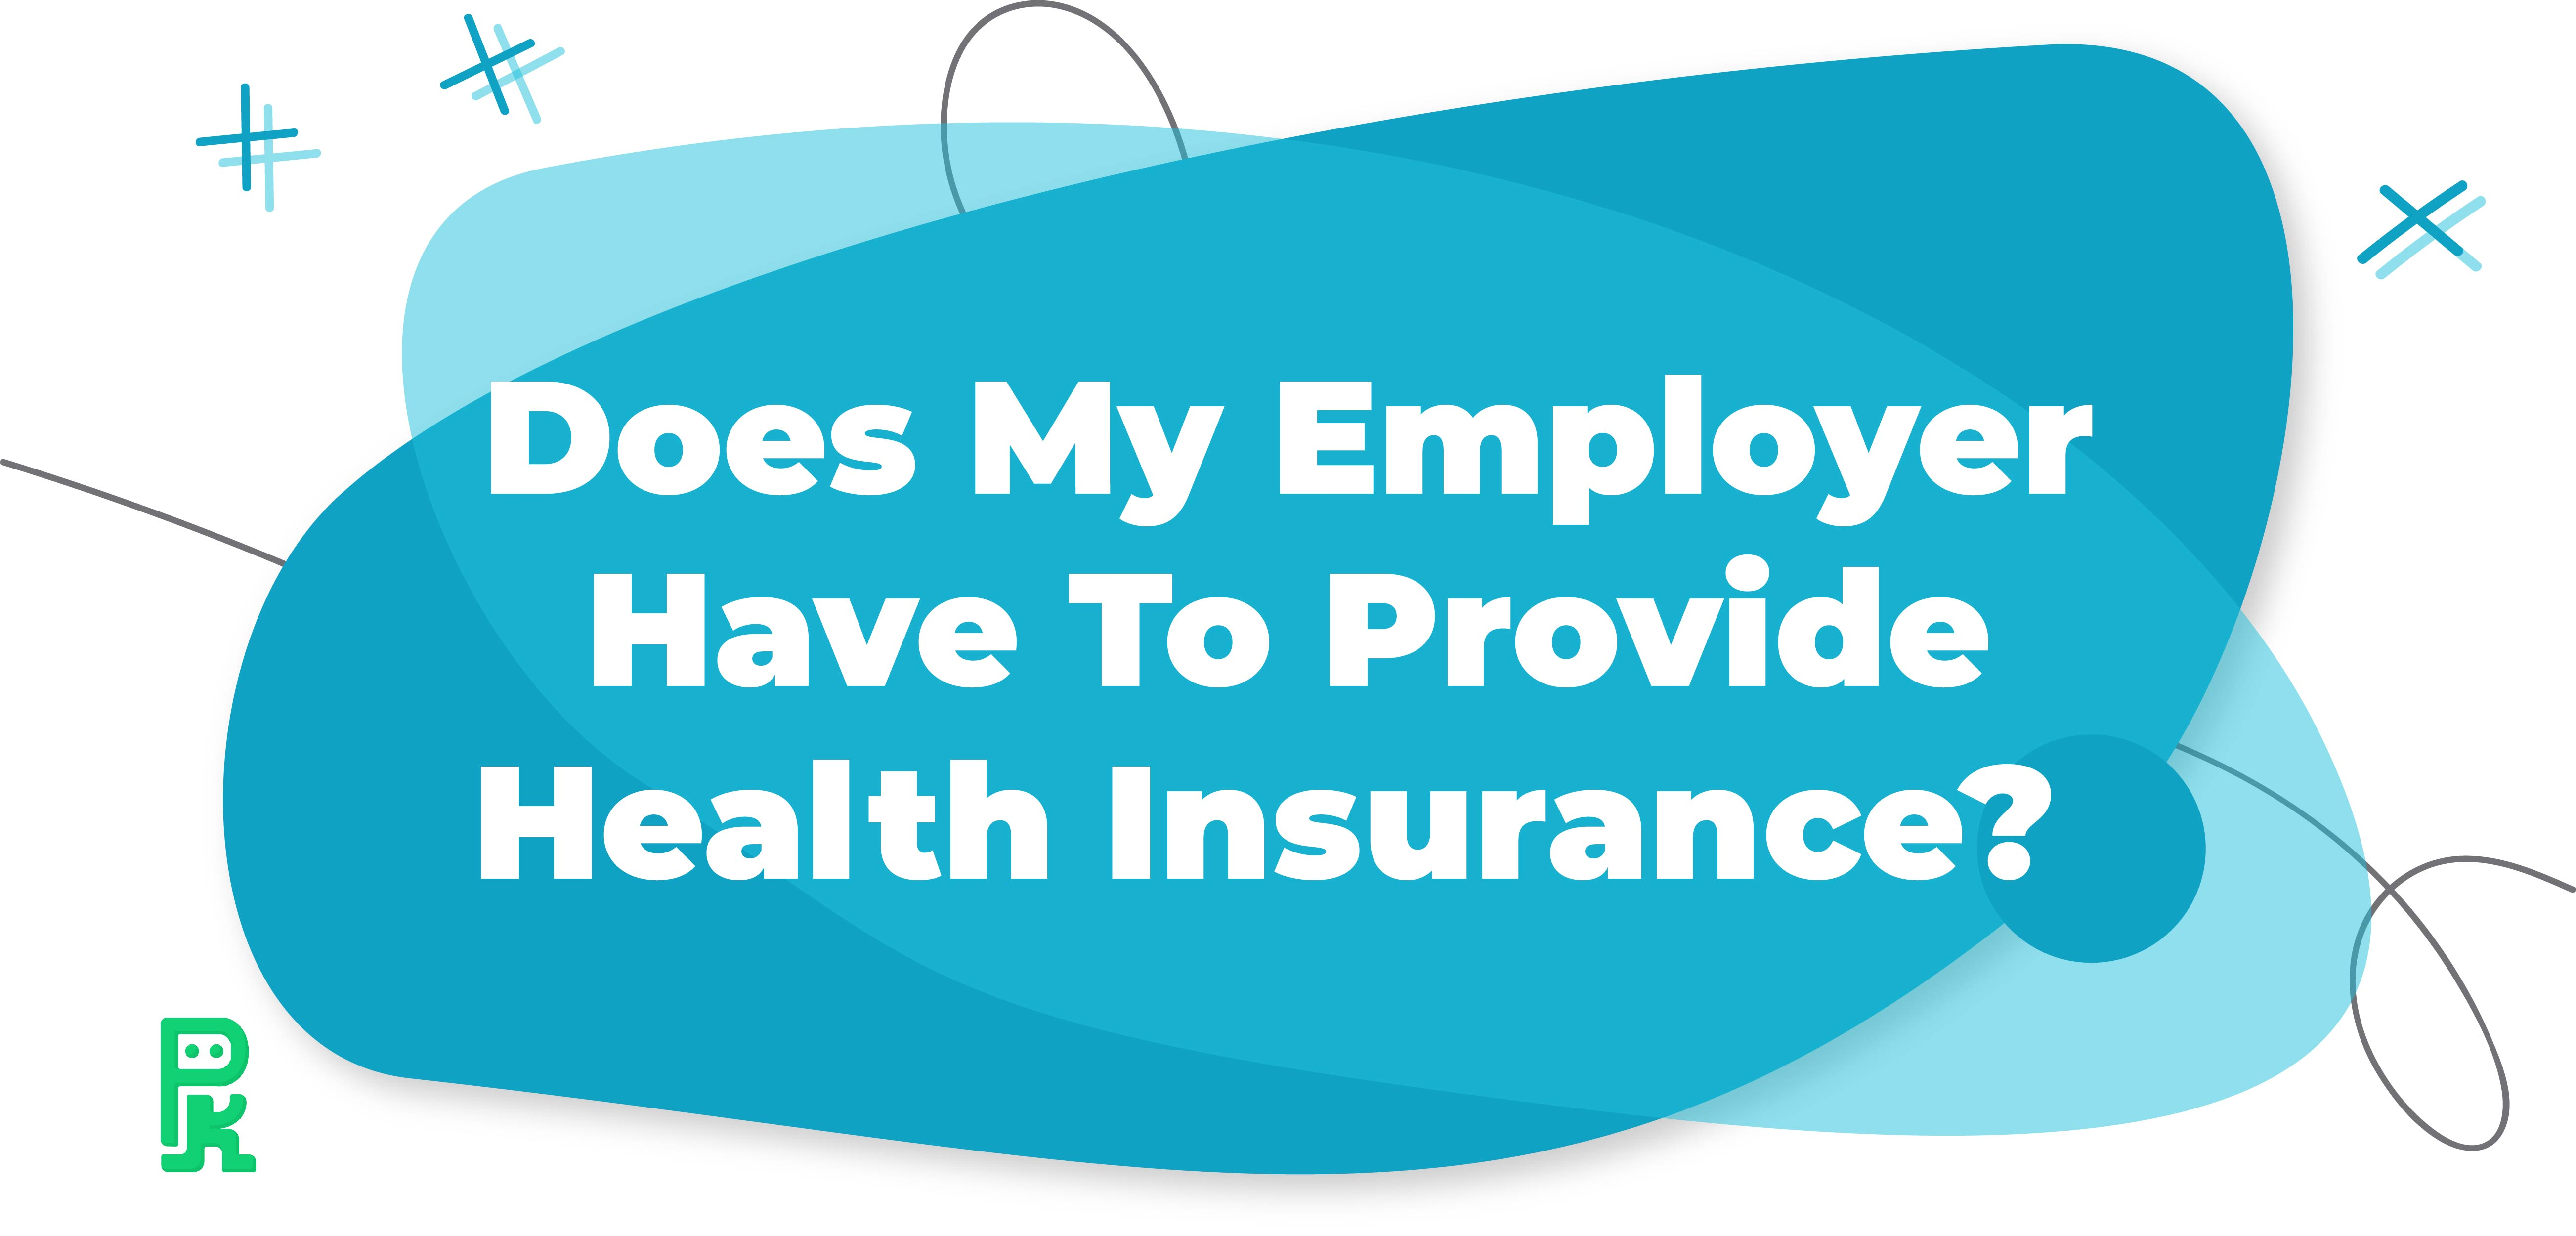 Does My Employer Have to Provide Health Insurance?